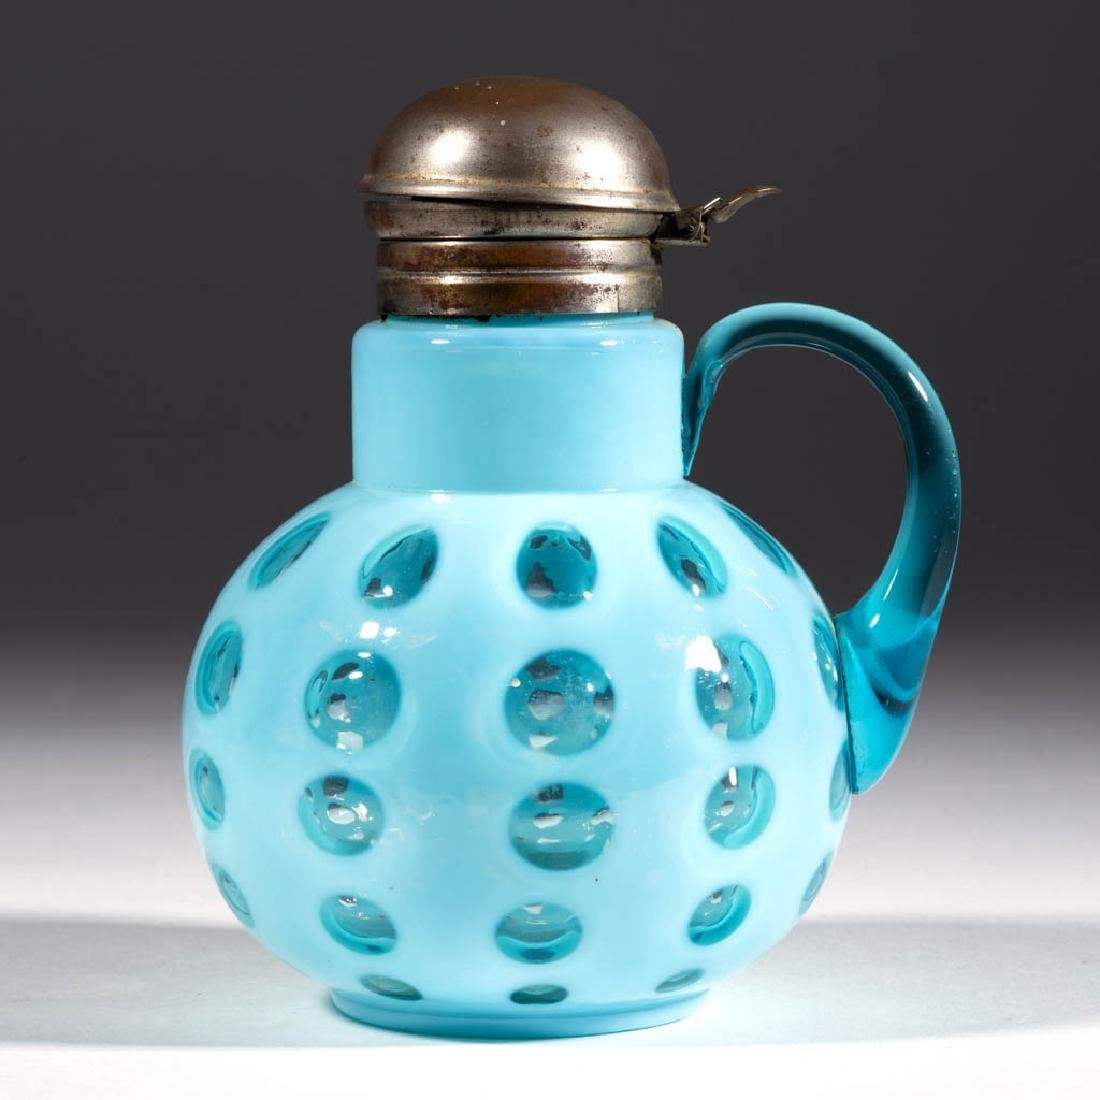 WEST VIRGINIA MOLD - POLKA DOT SYRUP PITCHER